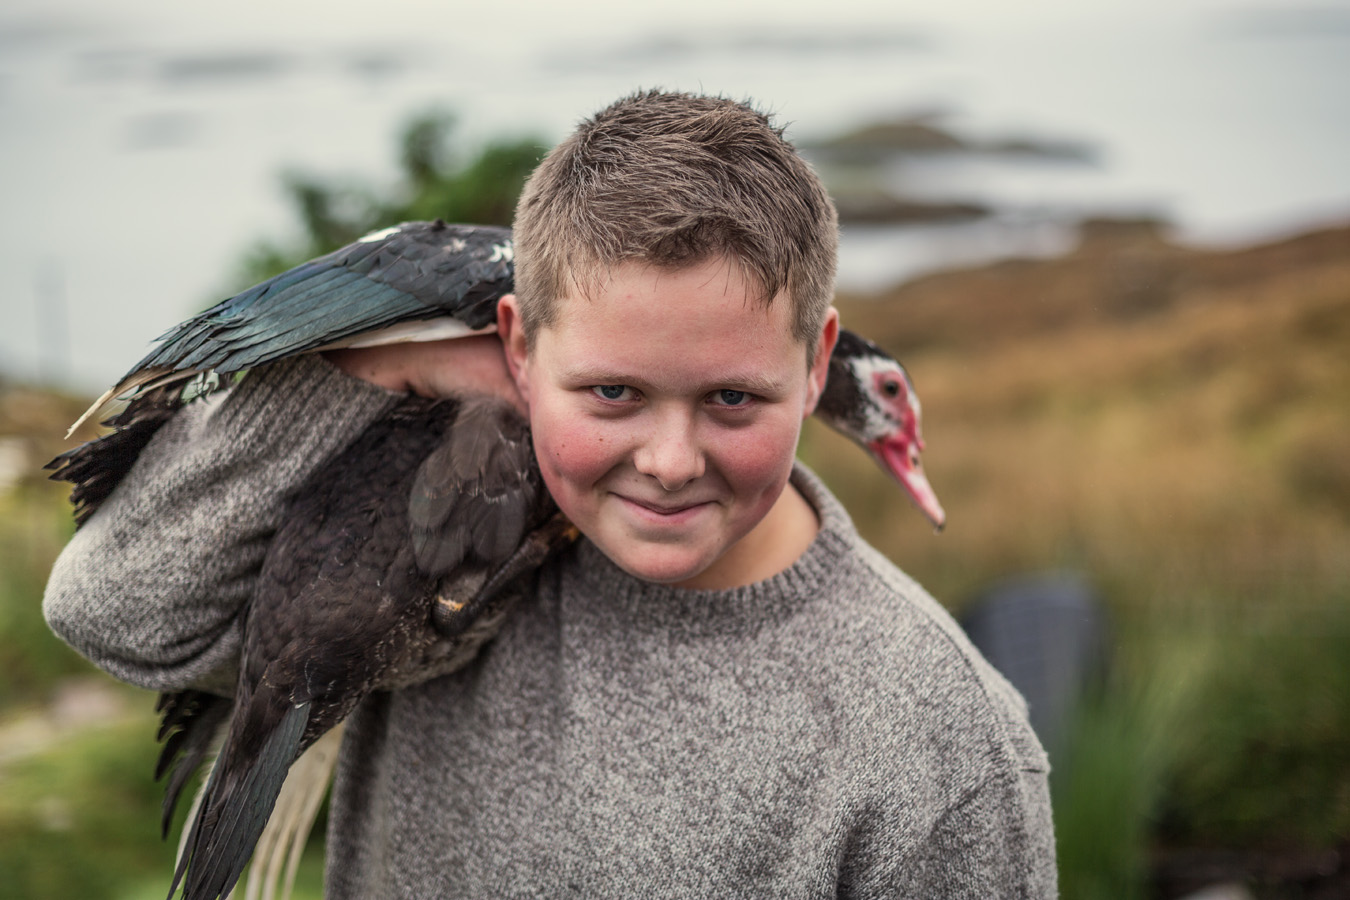 Portraits from the Isle of Harris. - Callum